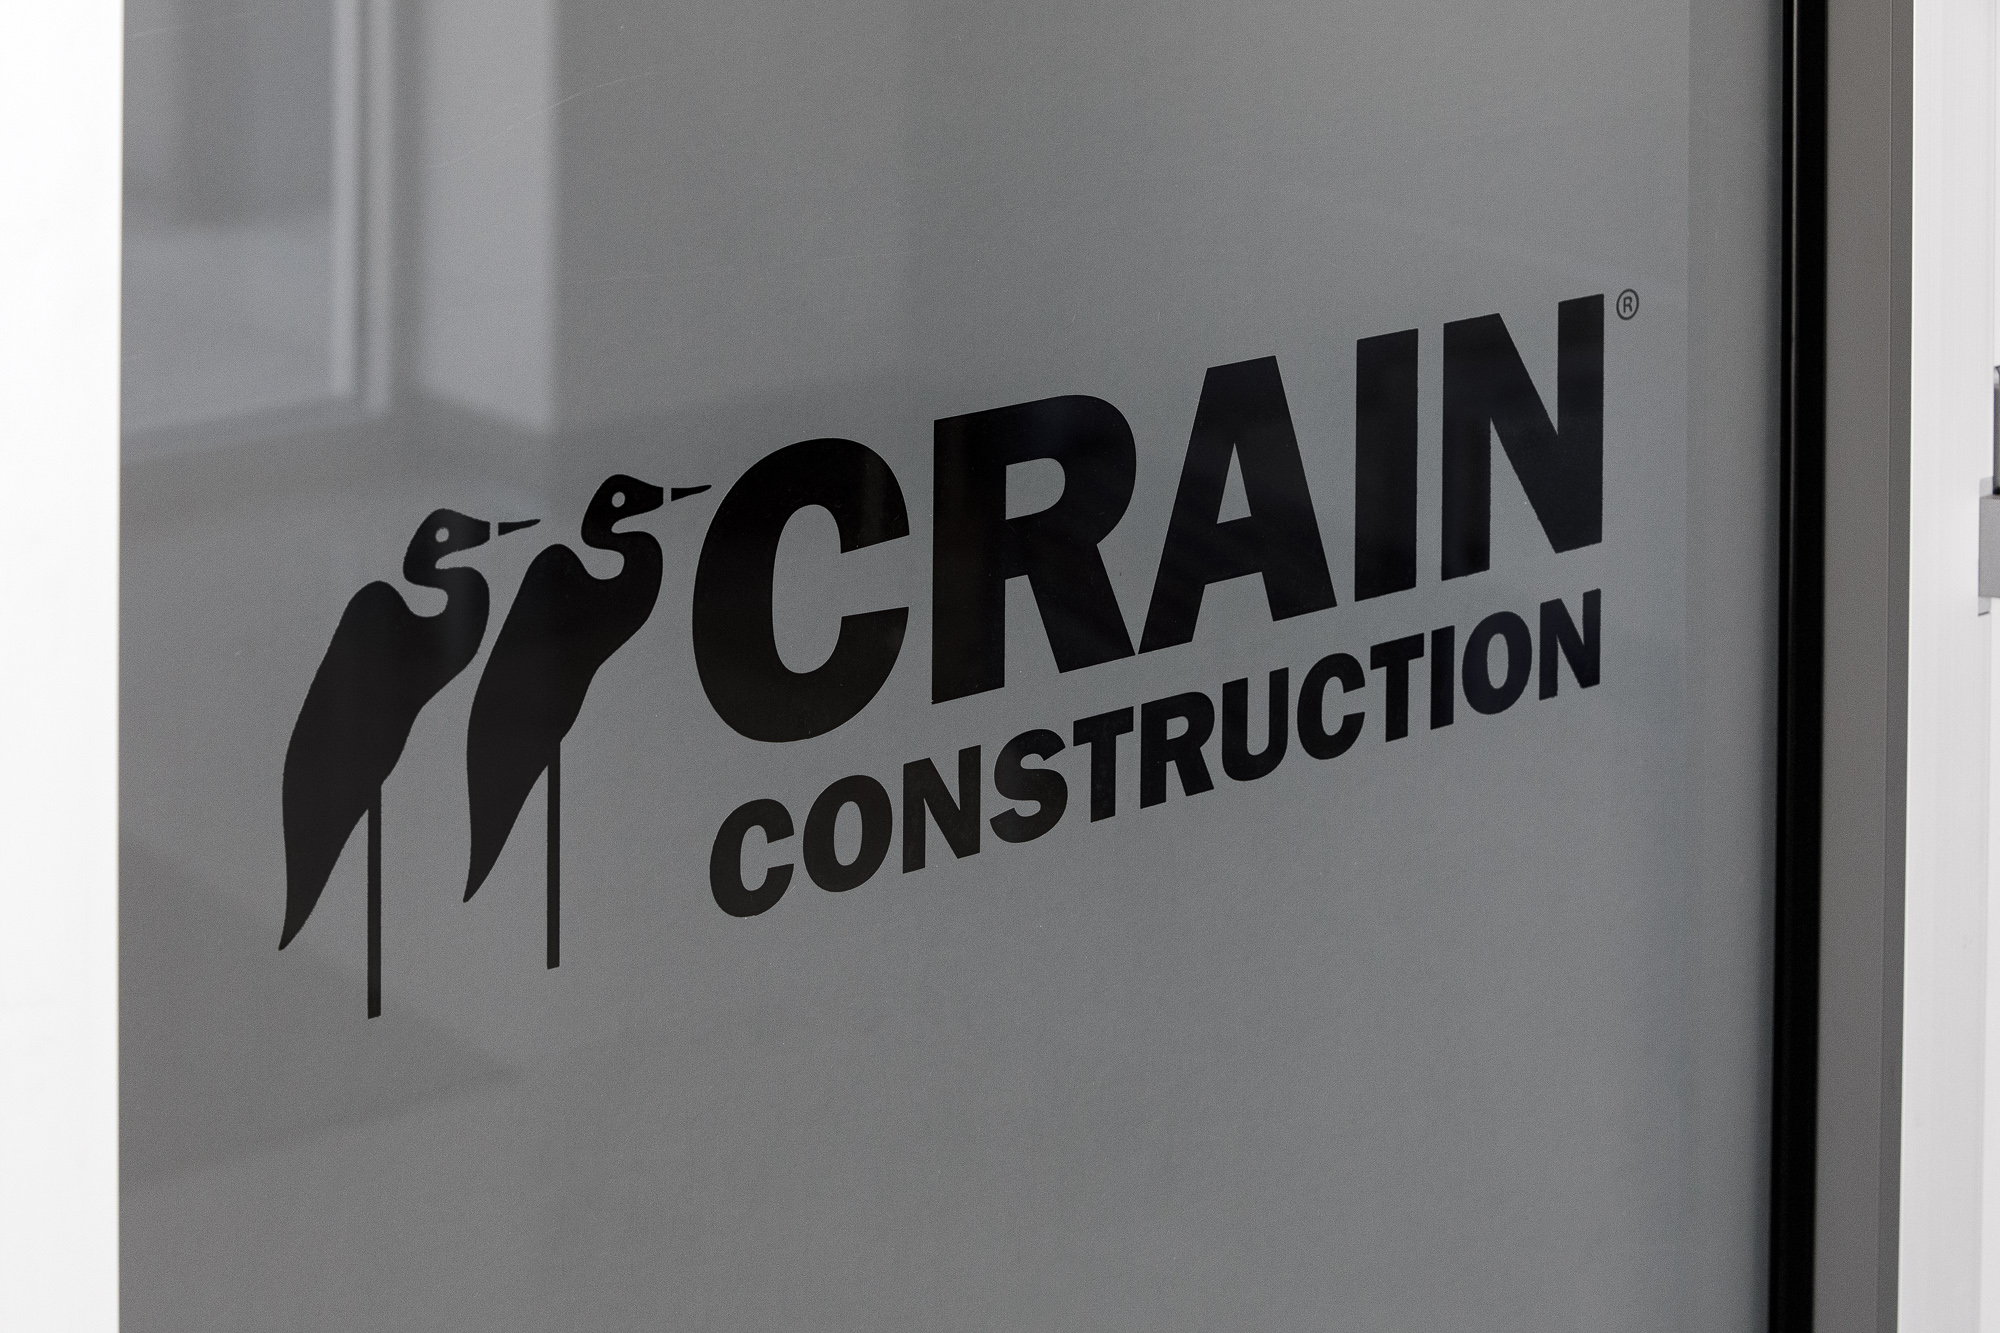 Crain Construction_Brand Identity Signage_Commercial Window Film_MG_8022_small 2000 px.jpg